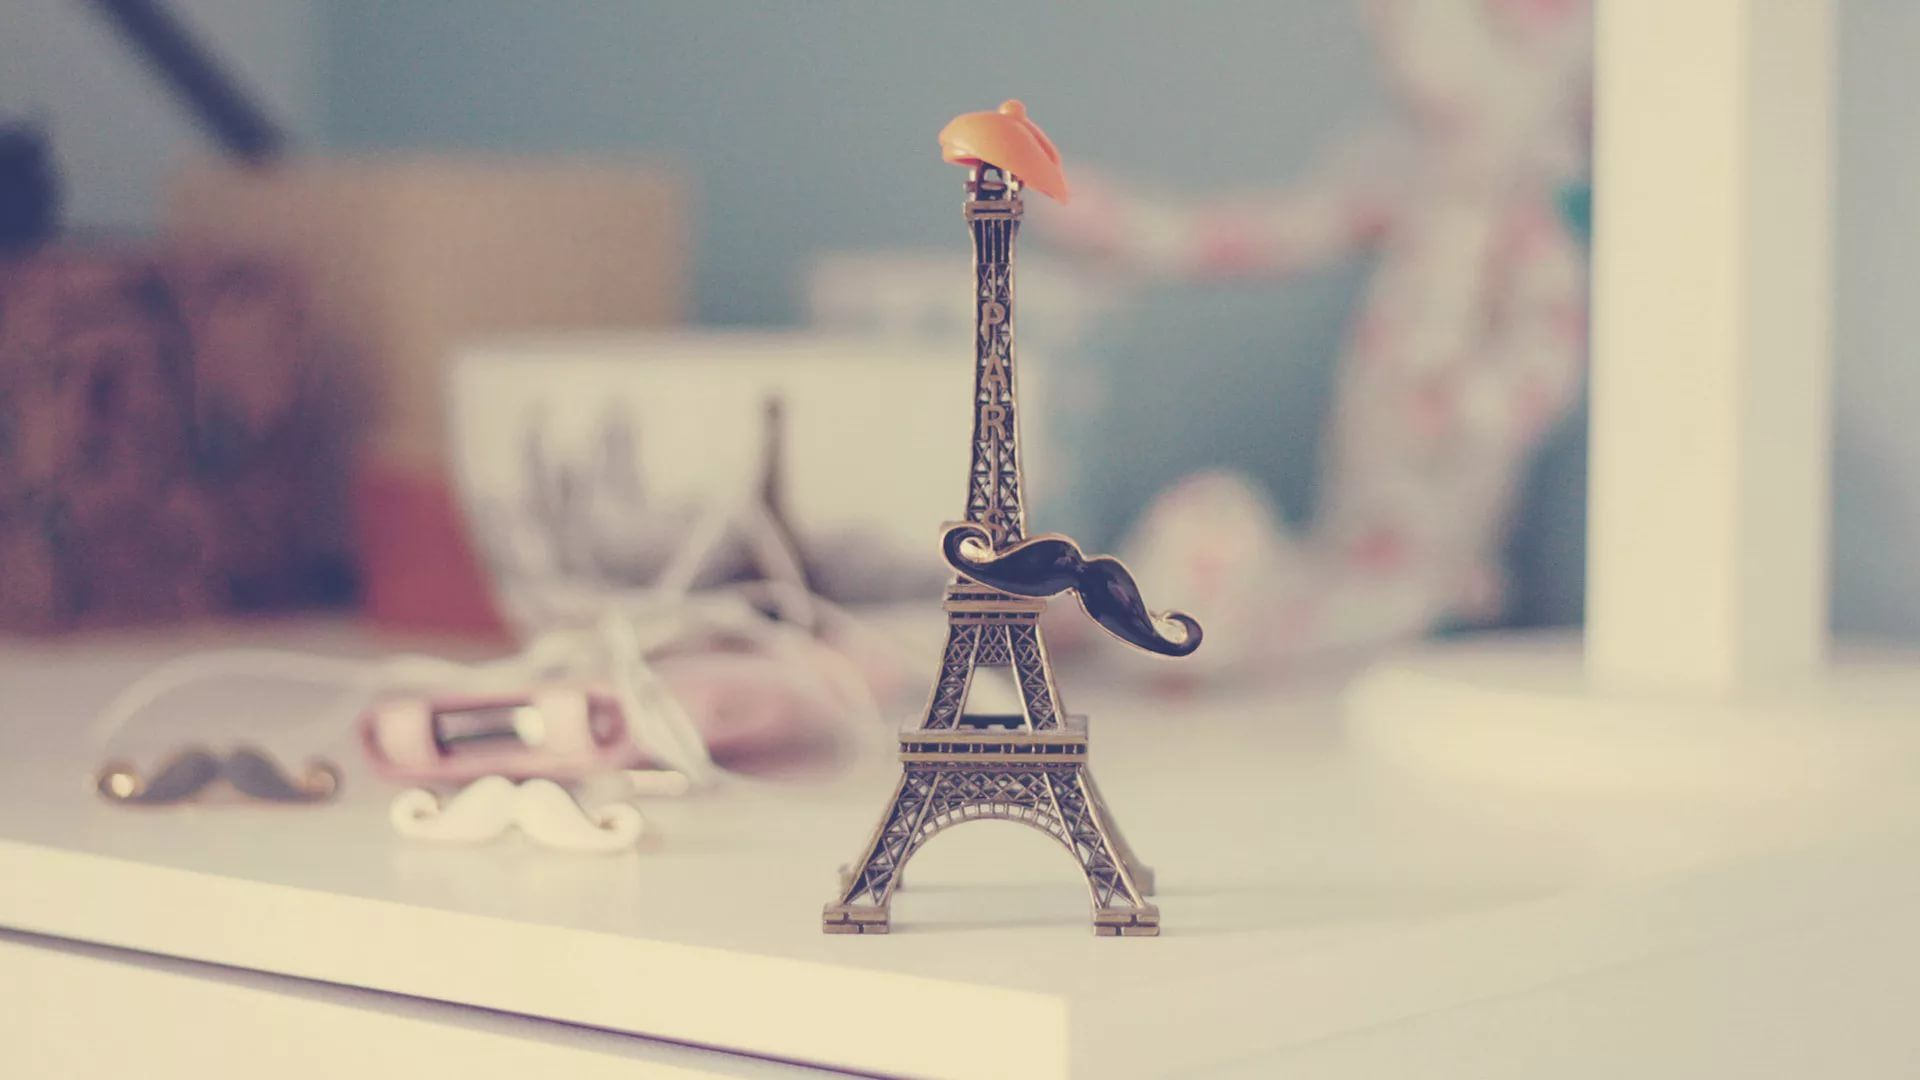 Cute Paris background wallpaper